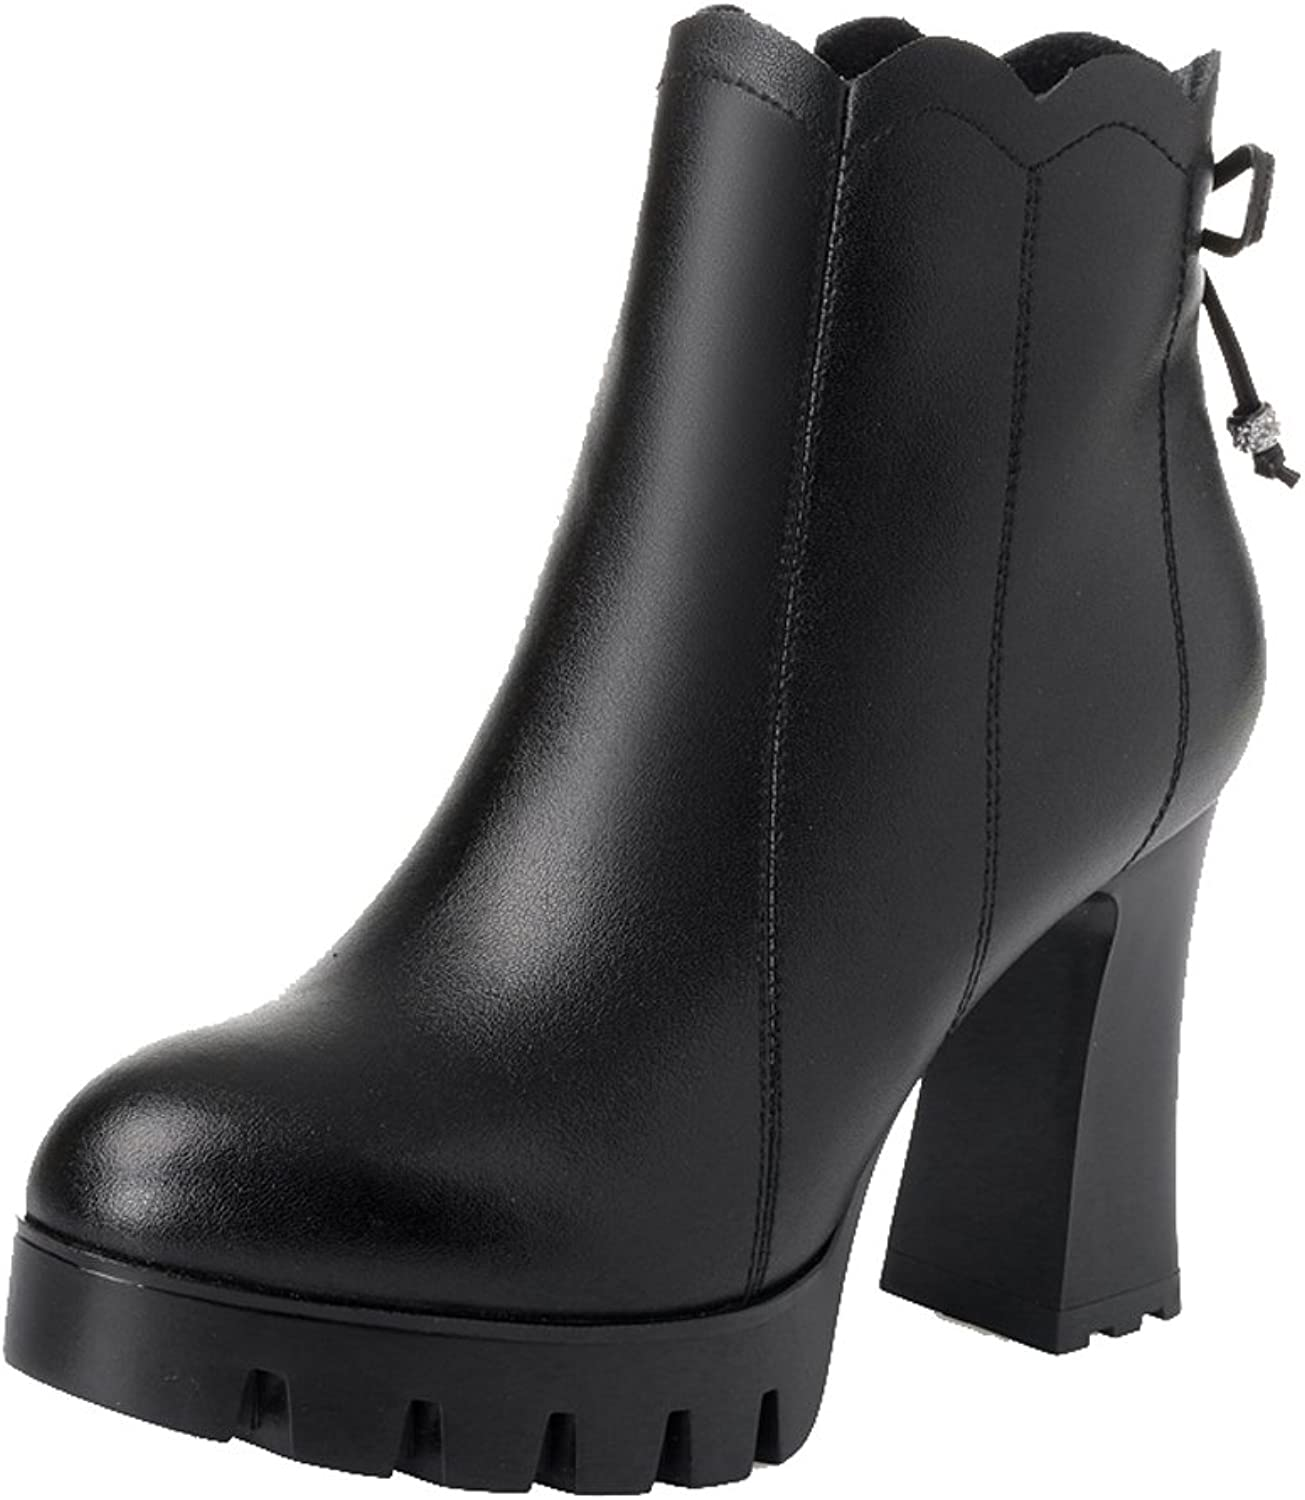 Dethan Women's Genuine Leather Round Toe Chunky High Heel Ankle Boots Bootie